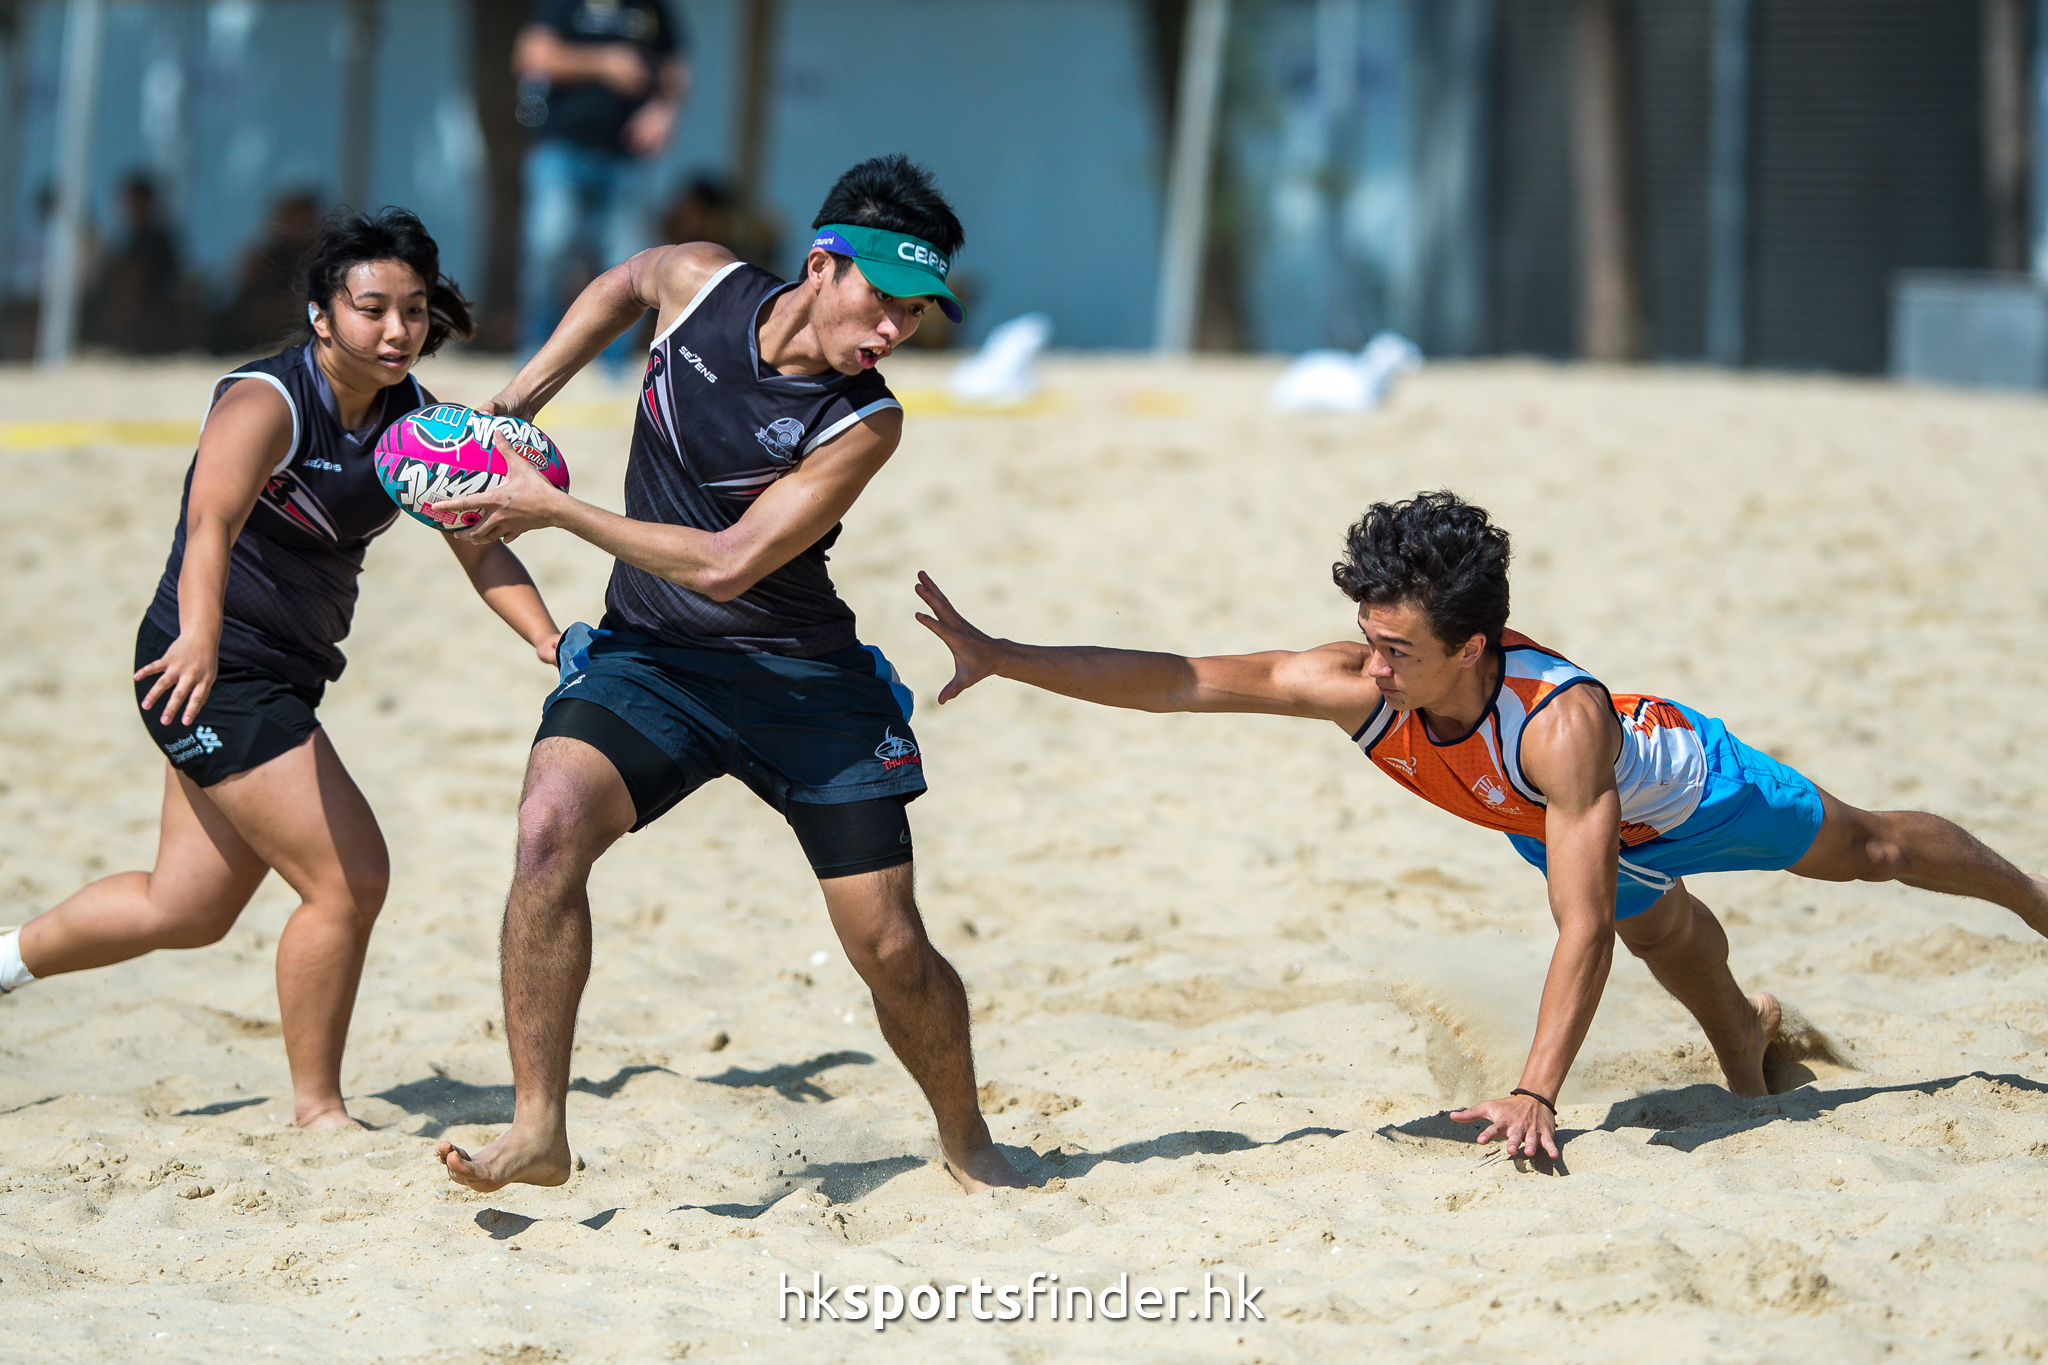 Her_GoldCoastTertiaryBeachRugby_16-11-12 12.50.49_000773.jpg